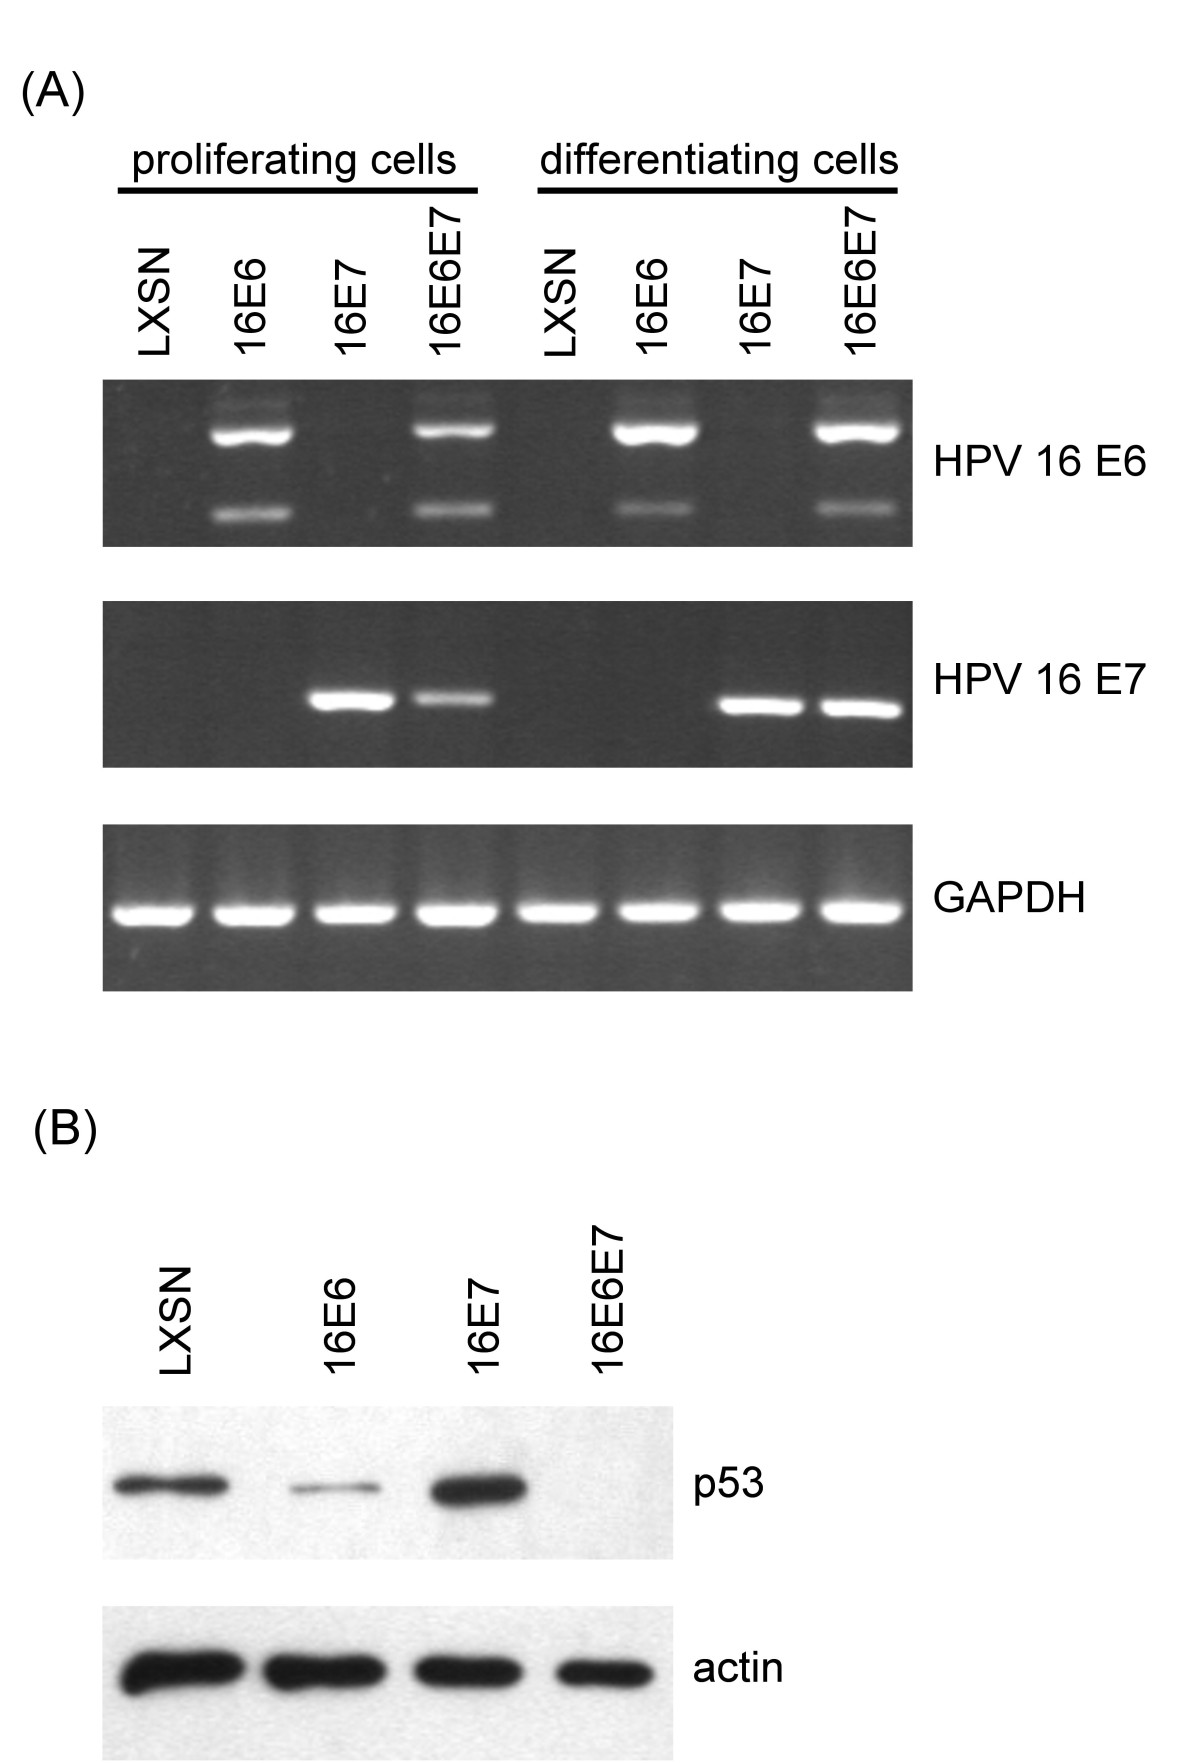 https://static-content.springer.com/image/art%3A10.1186%2F1743-422X-9-36/MediaObjects/12985_2011_Article_1701_Fig1_HTML.jpg